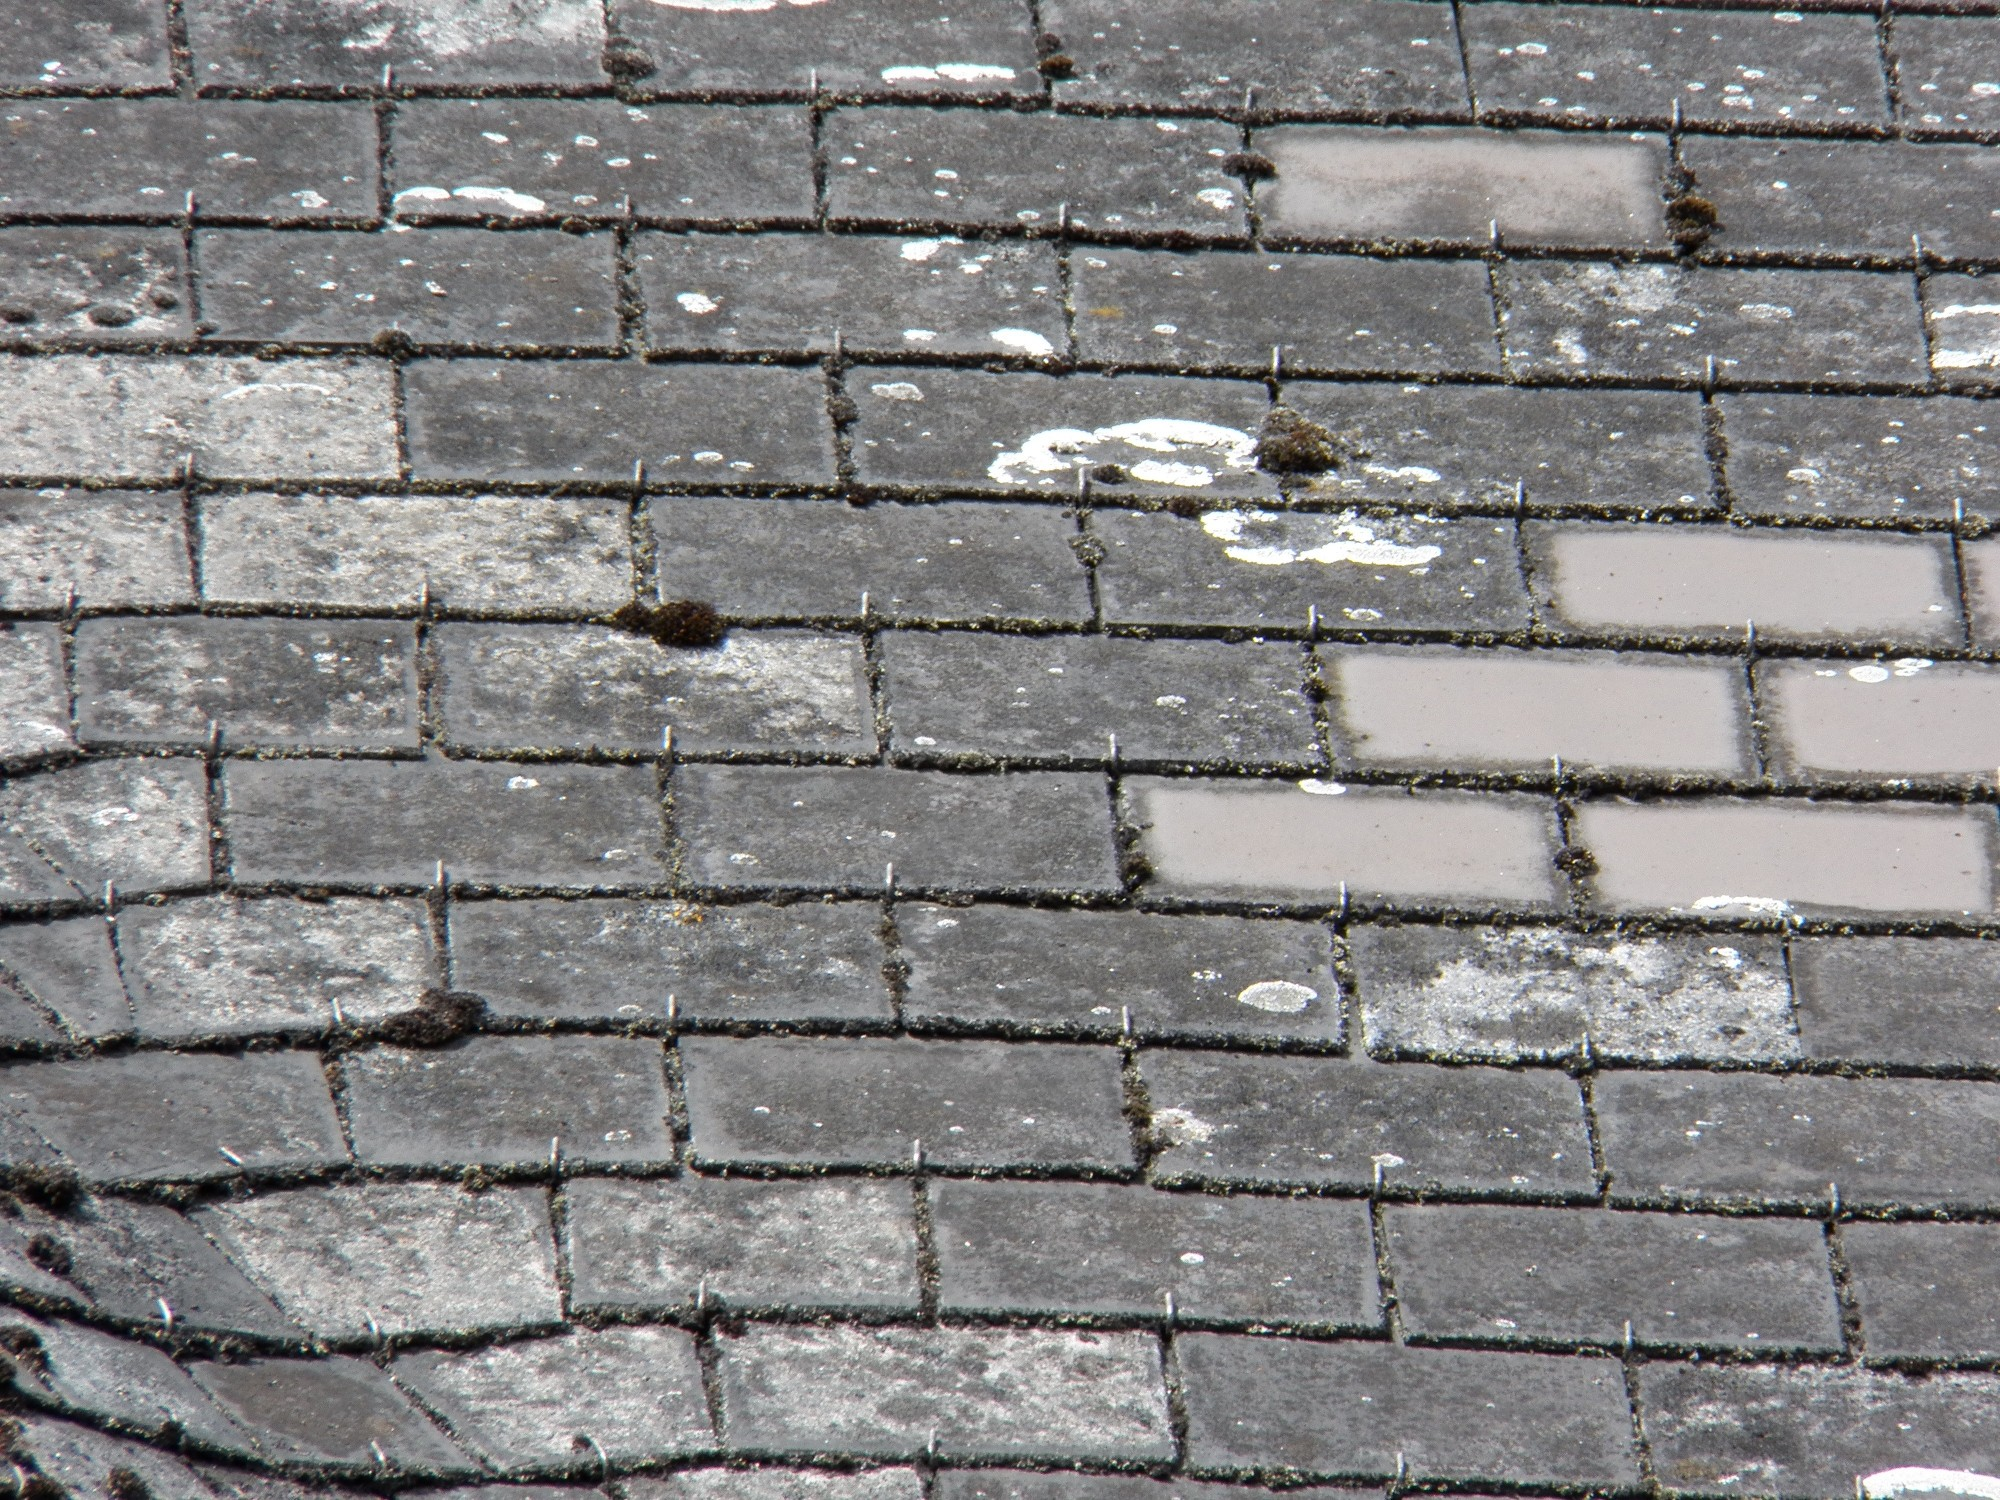 how to tell if roof tiles are asbestos